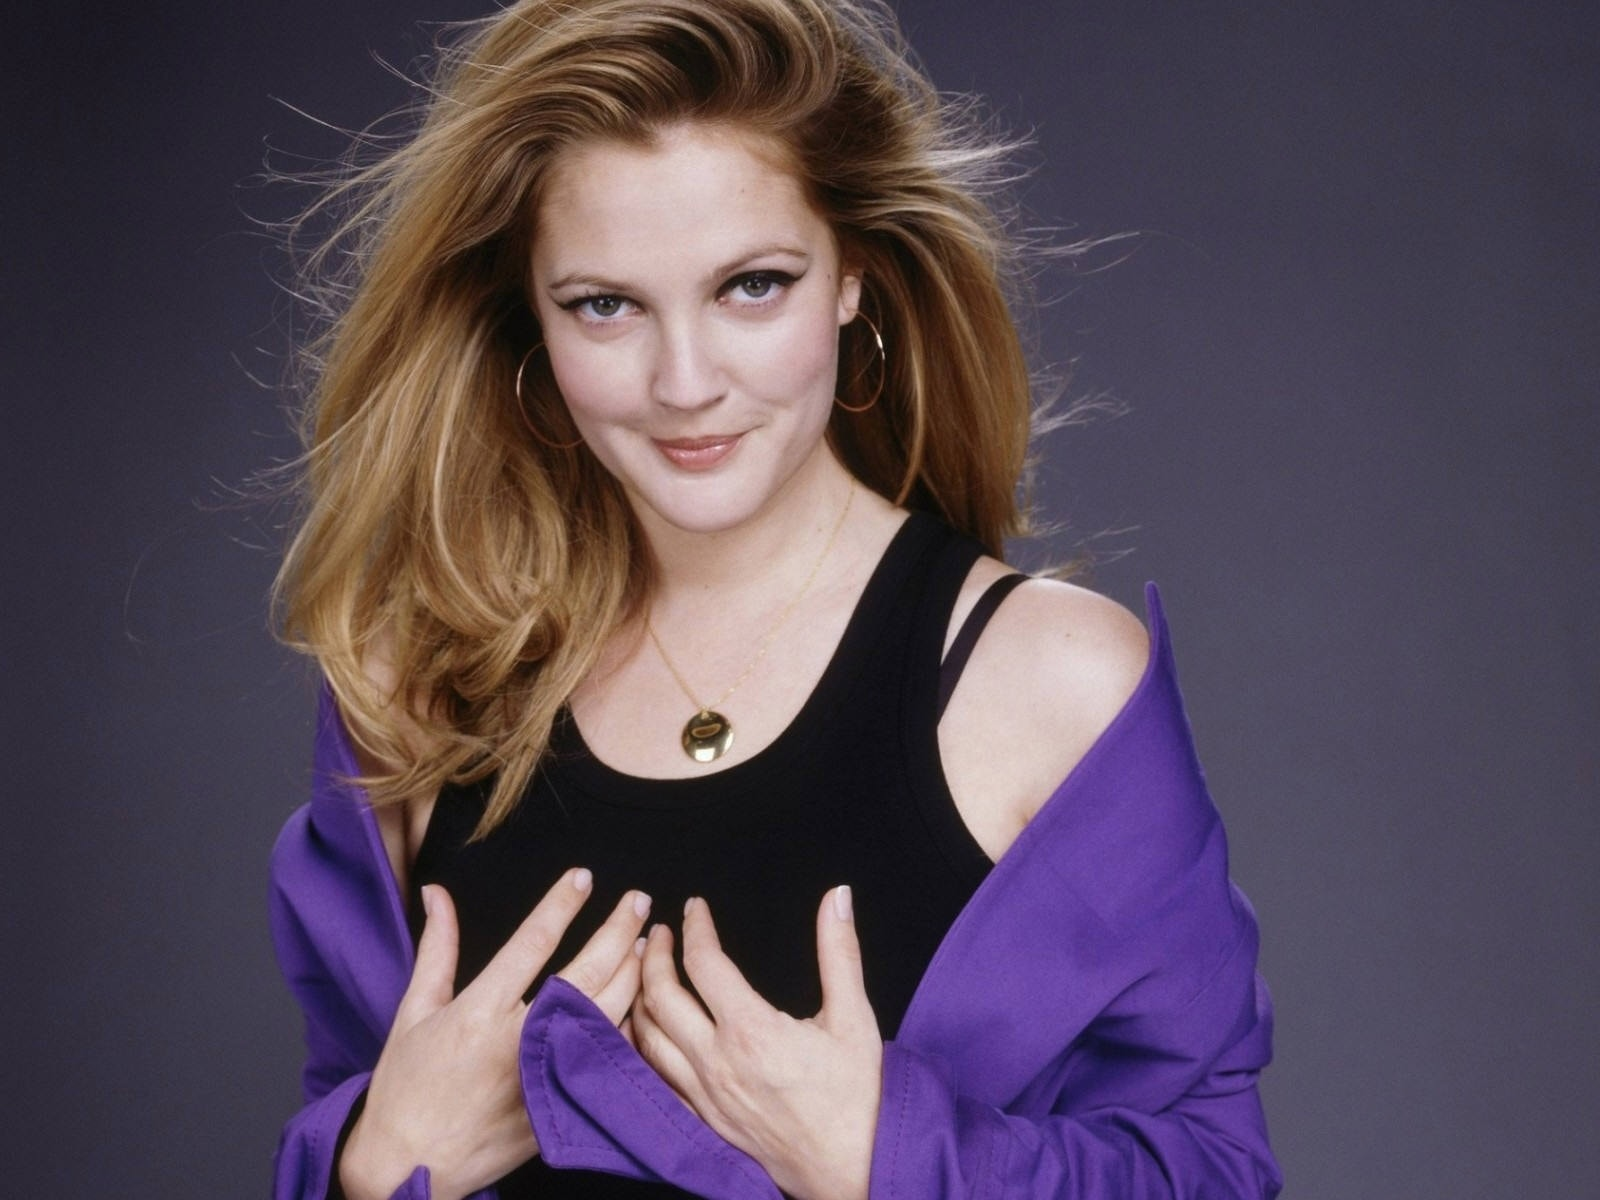 Drew Barrymore Background